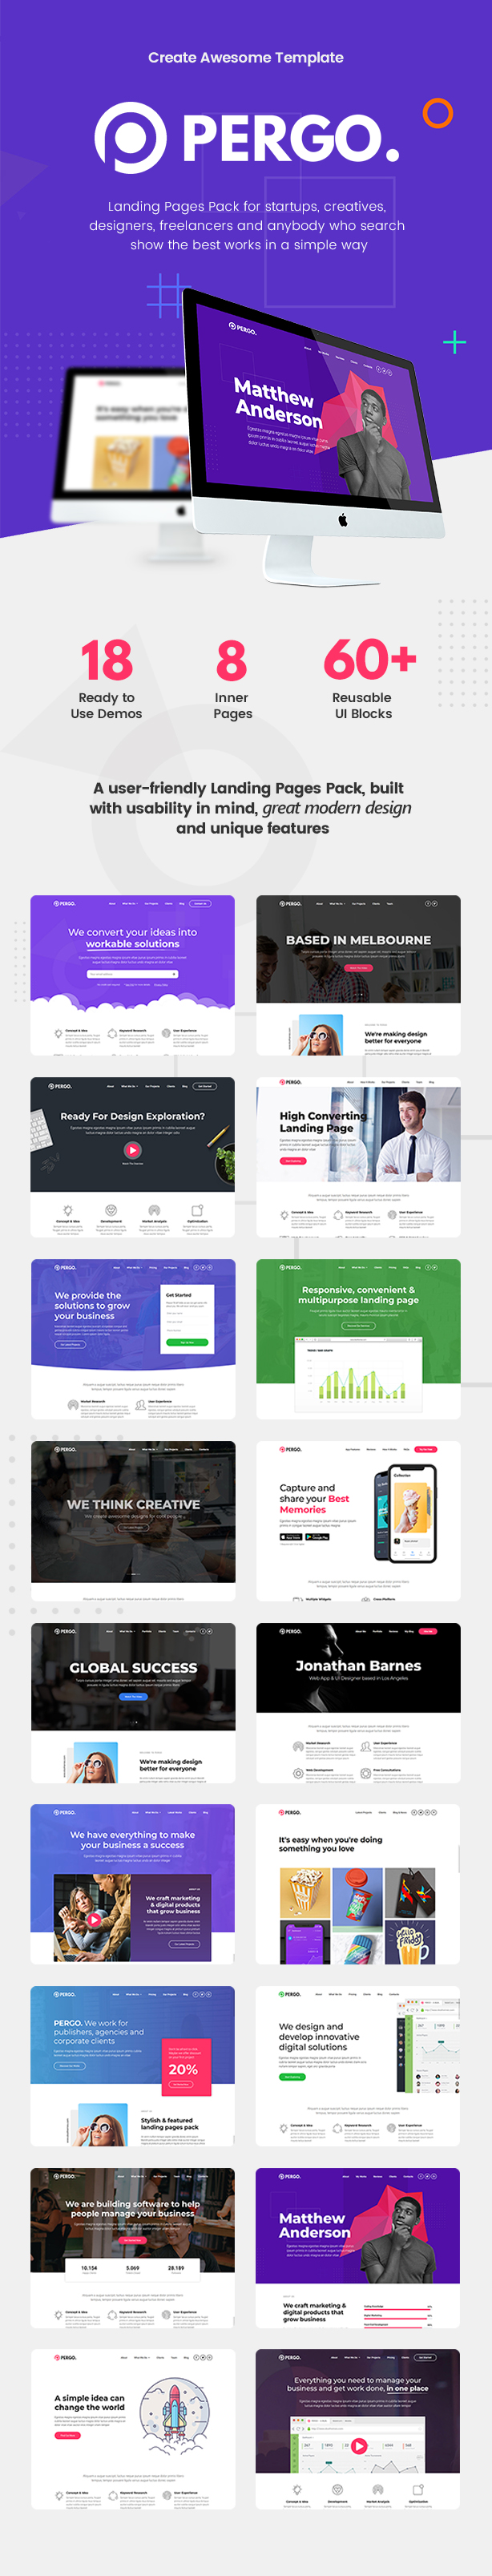 Pergo - Multipurpose Landing Page WordPress Theme - 3